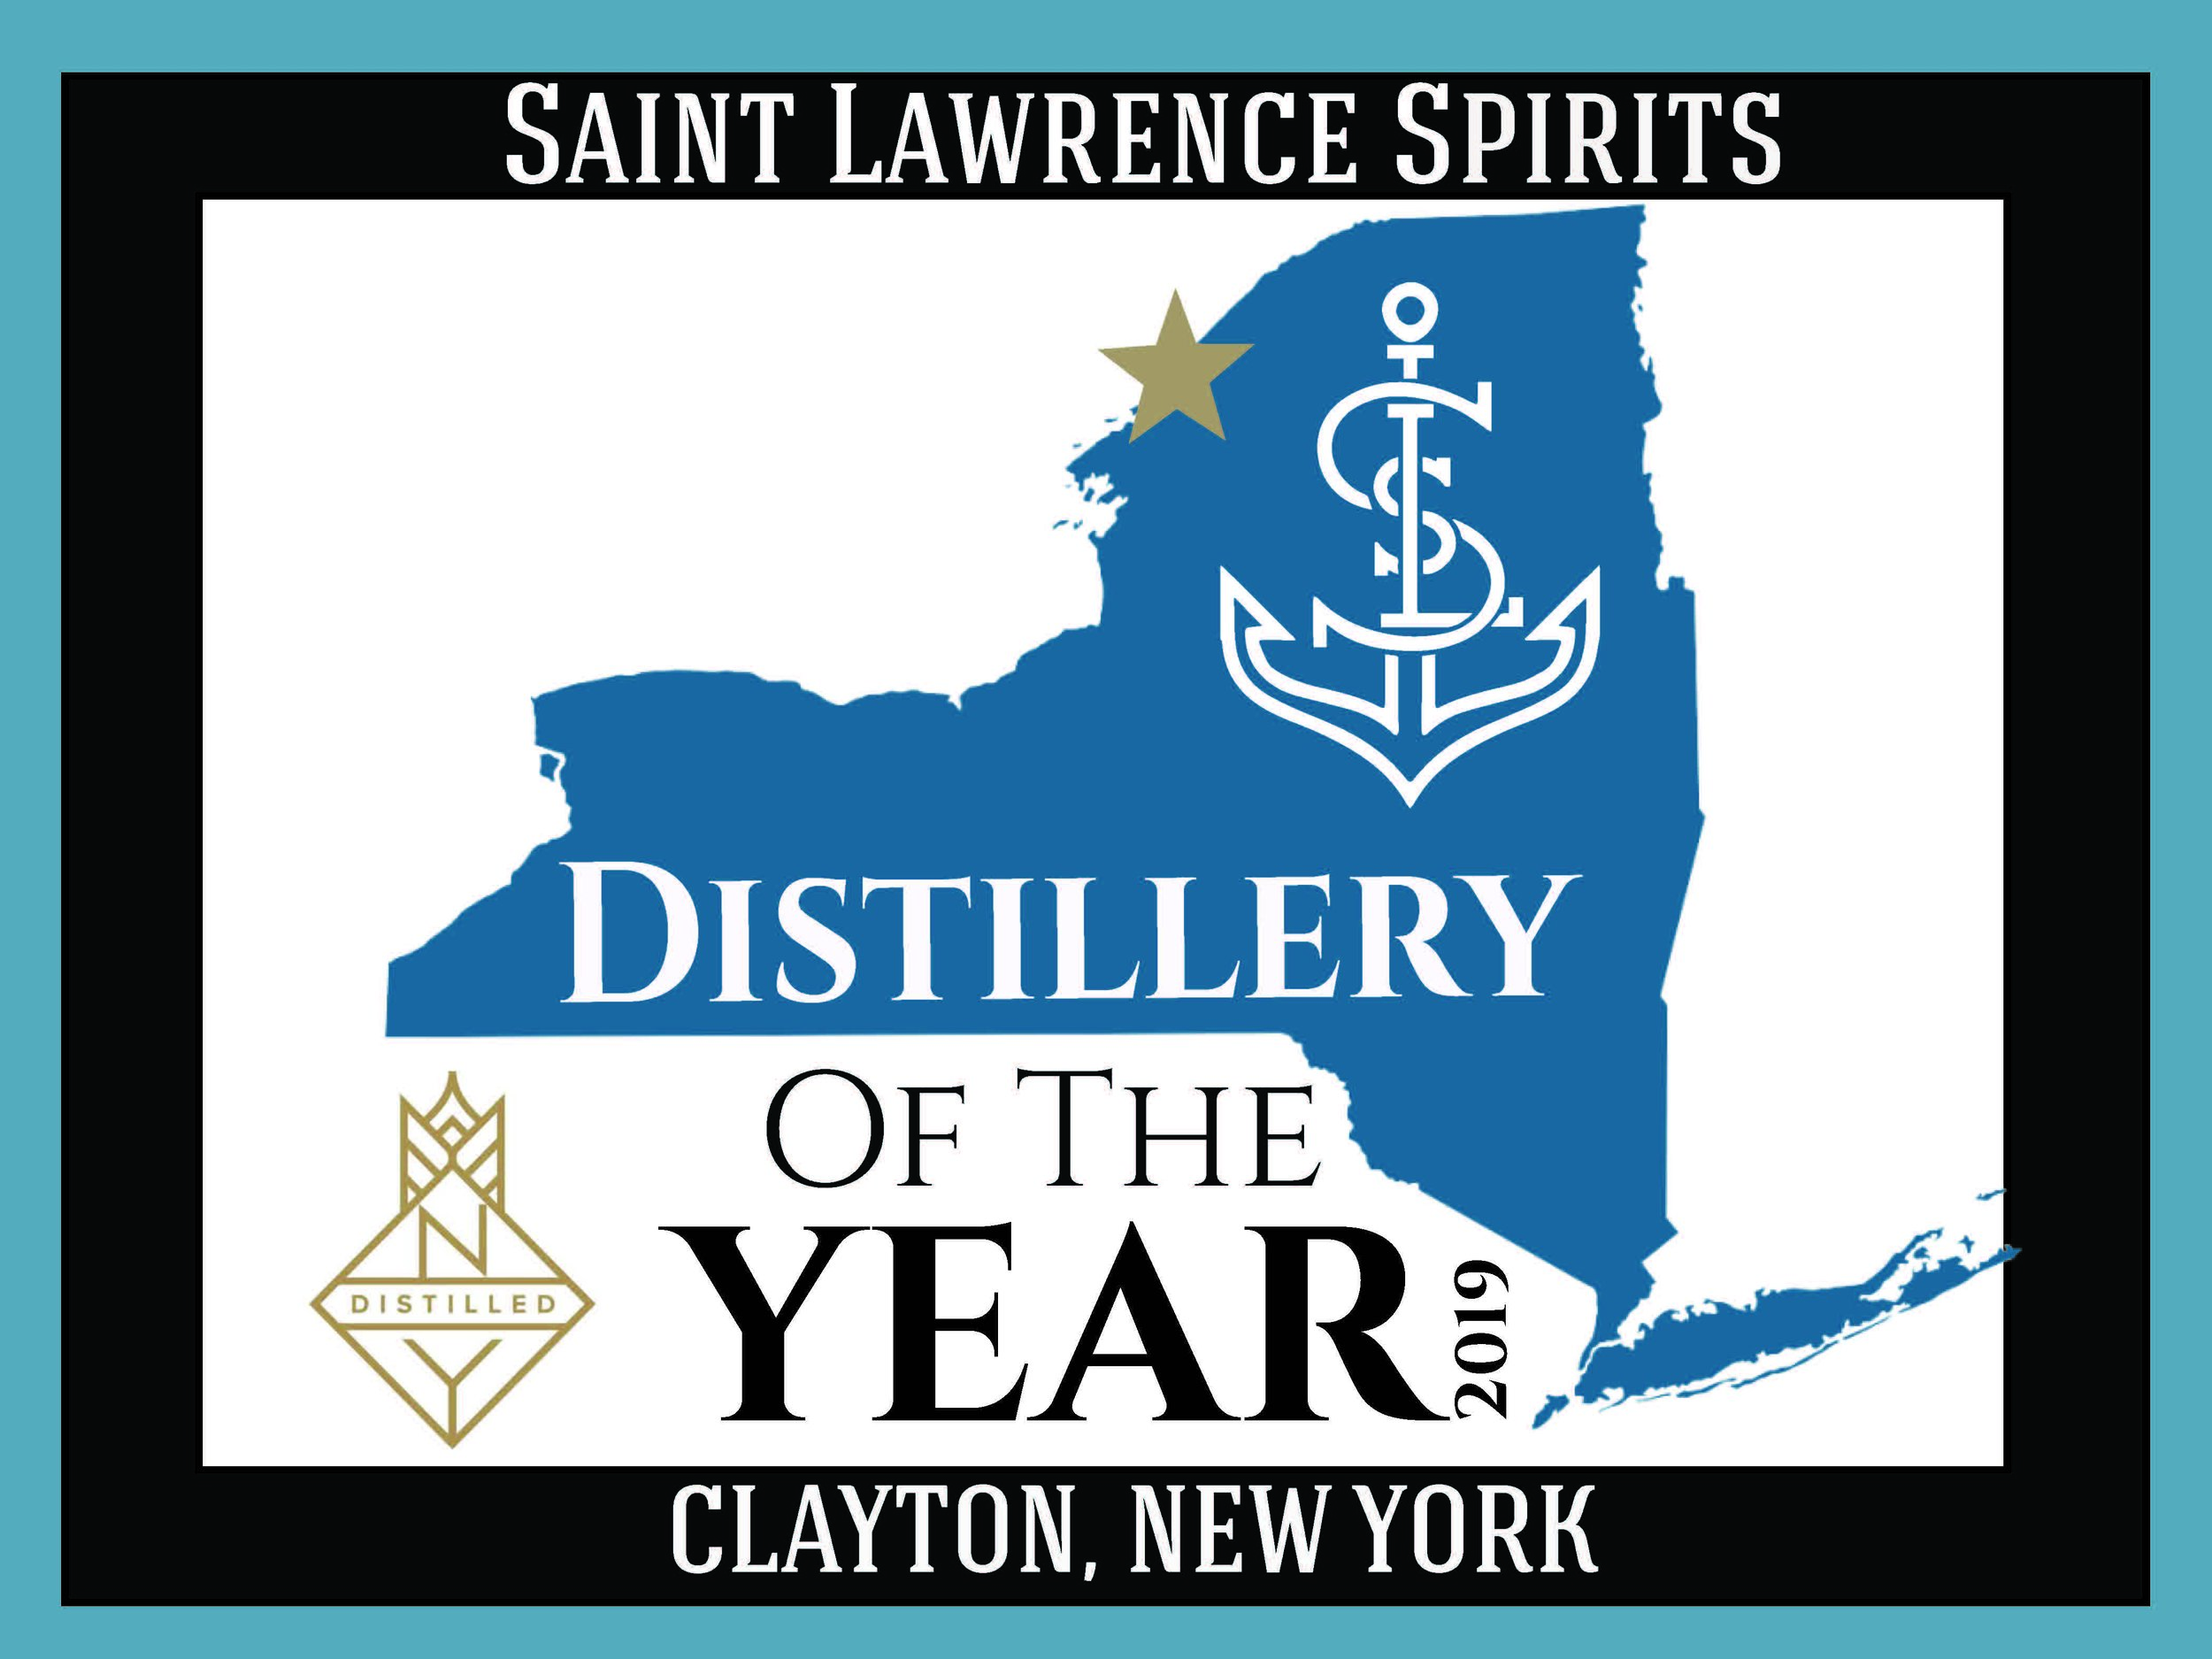 Saint Lawrence Spirits Awarded Distillery of the Year by New York State Distiller's Guild